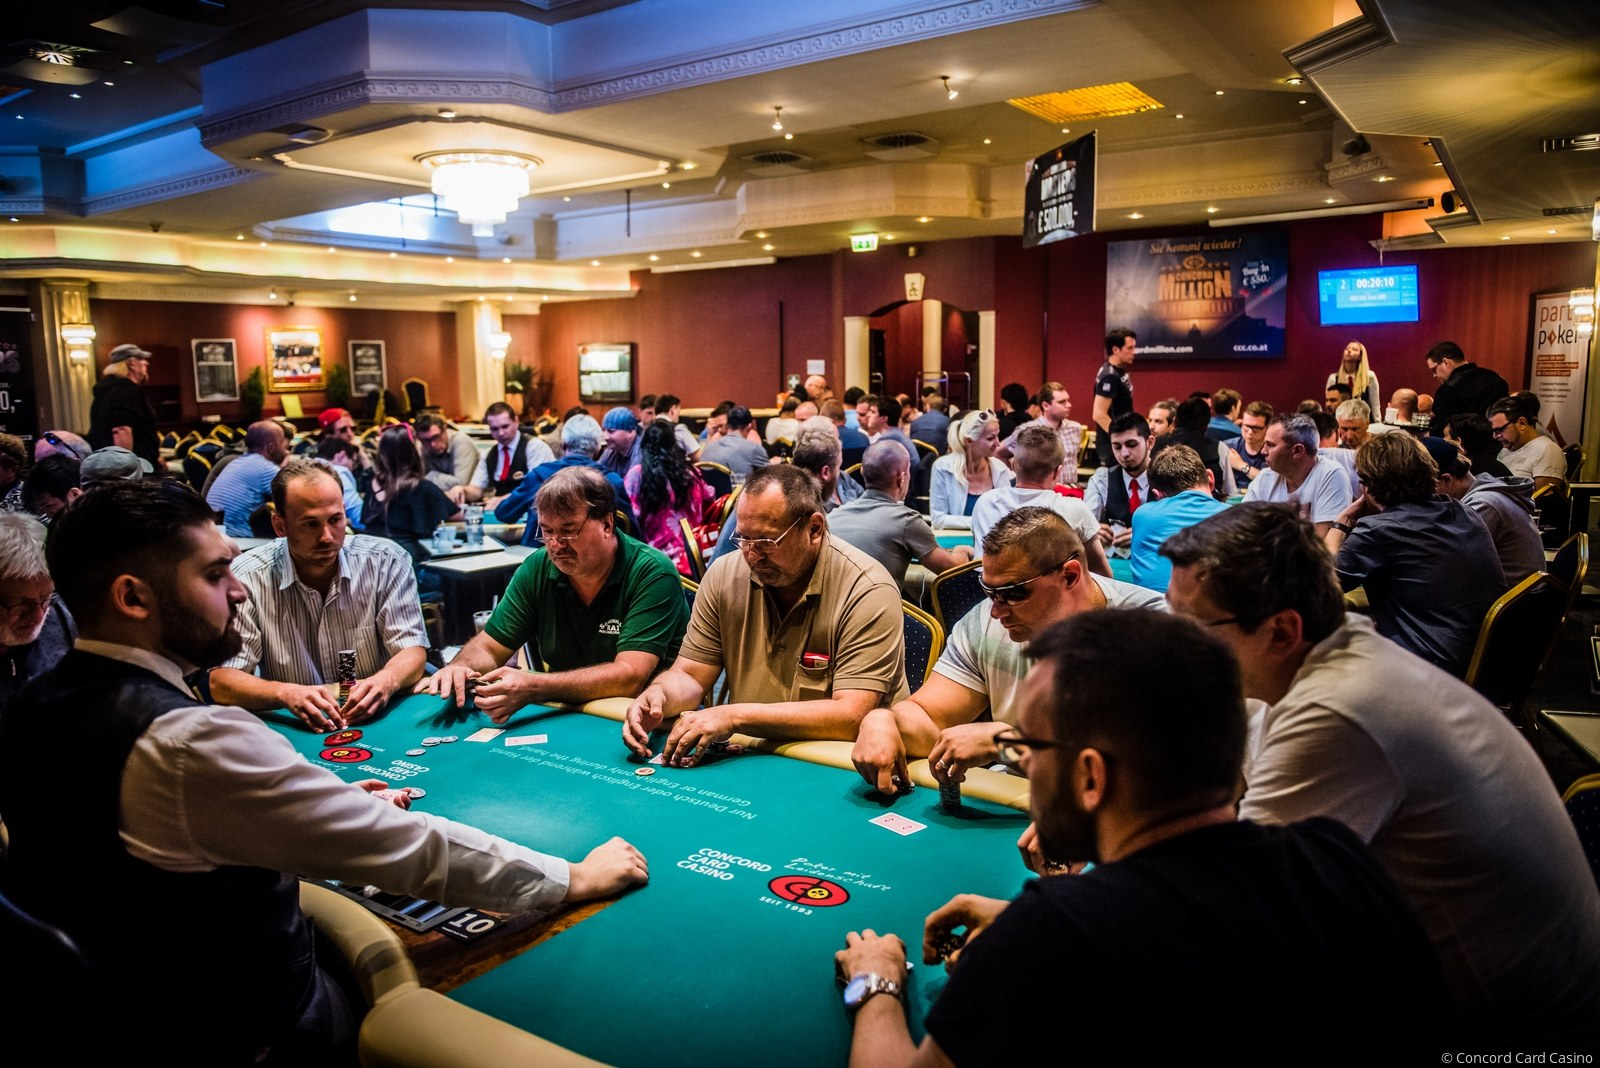 Ferhat Yilmaz takes over the Concord Masters chip lead